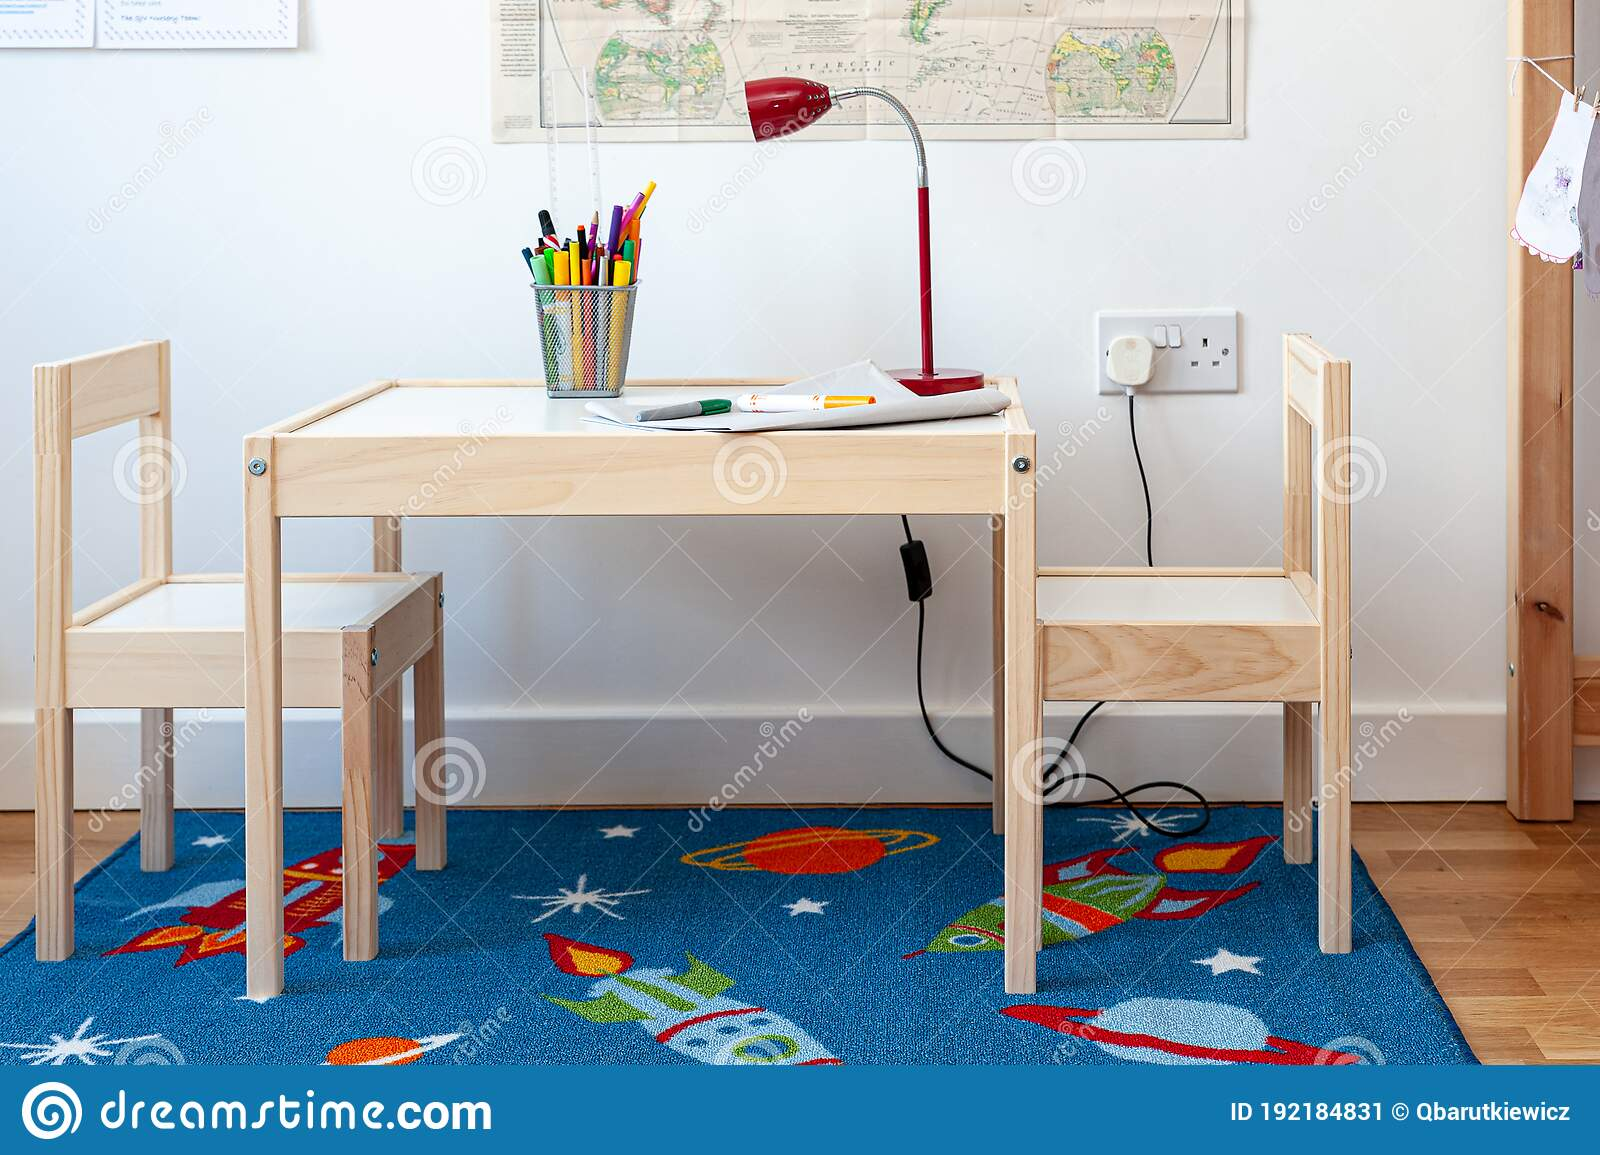 Furniture Assembled From Flat Pack Set Of Two Small Chairs With Desk In Child S Bedroom Stock Image Image Of Desk Flatpack 192184831